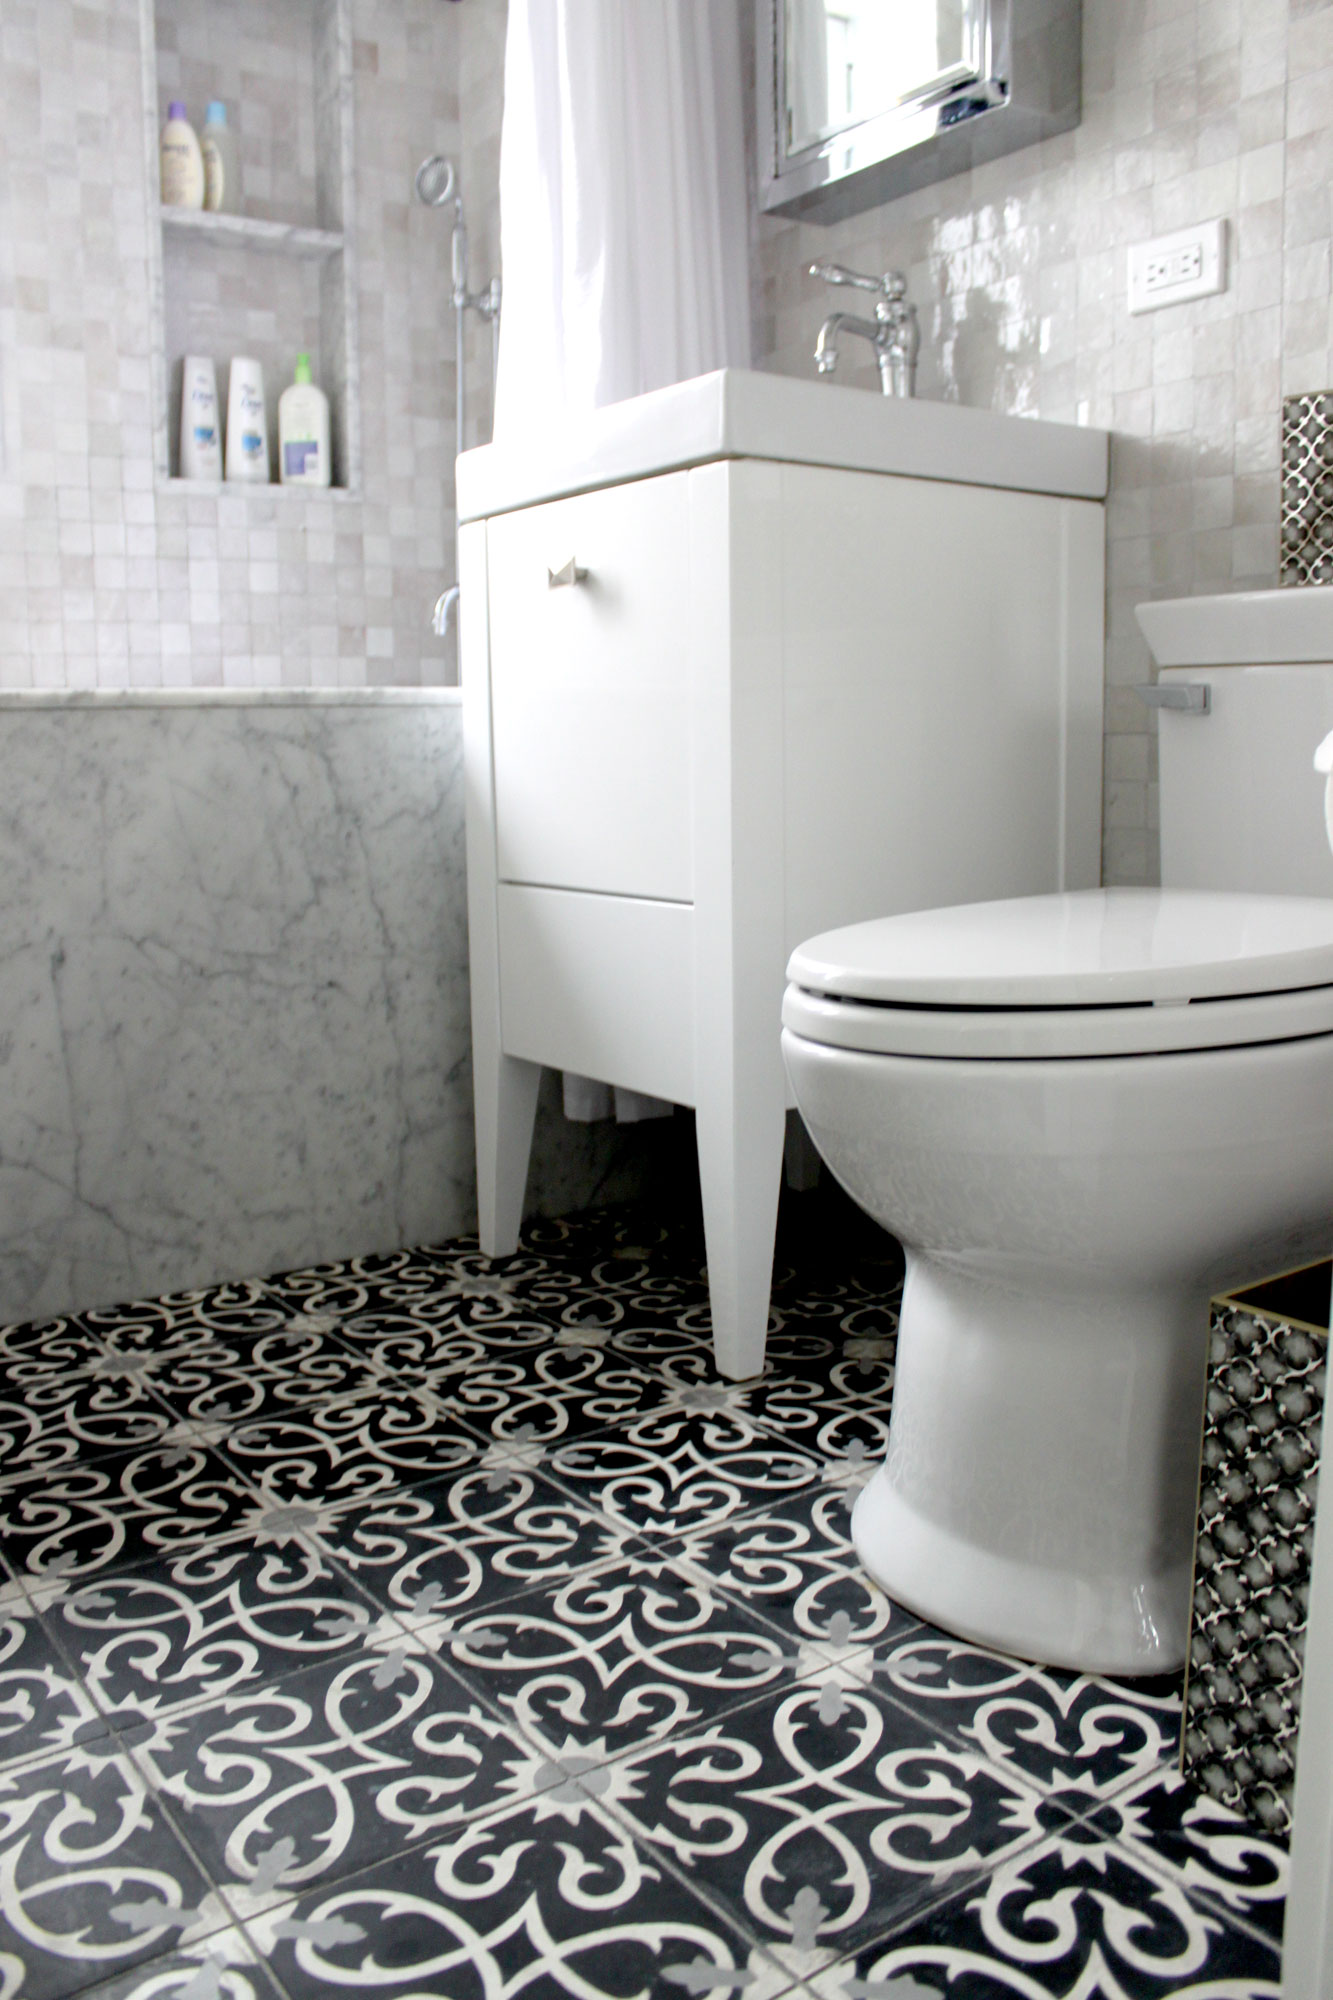 Cement bathroom tiles - Lucifer C4 14 24 Moroccan Cement Tile